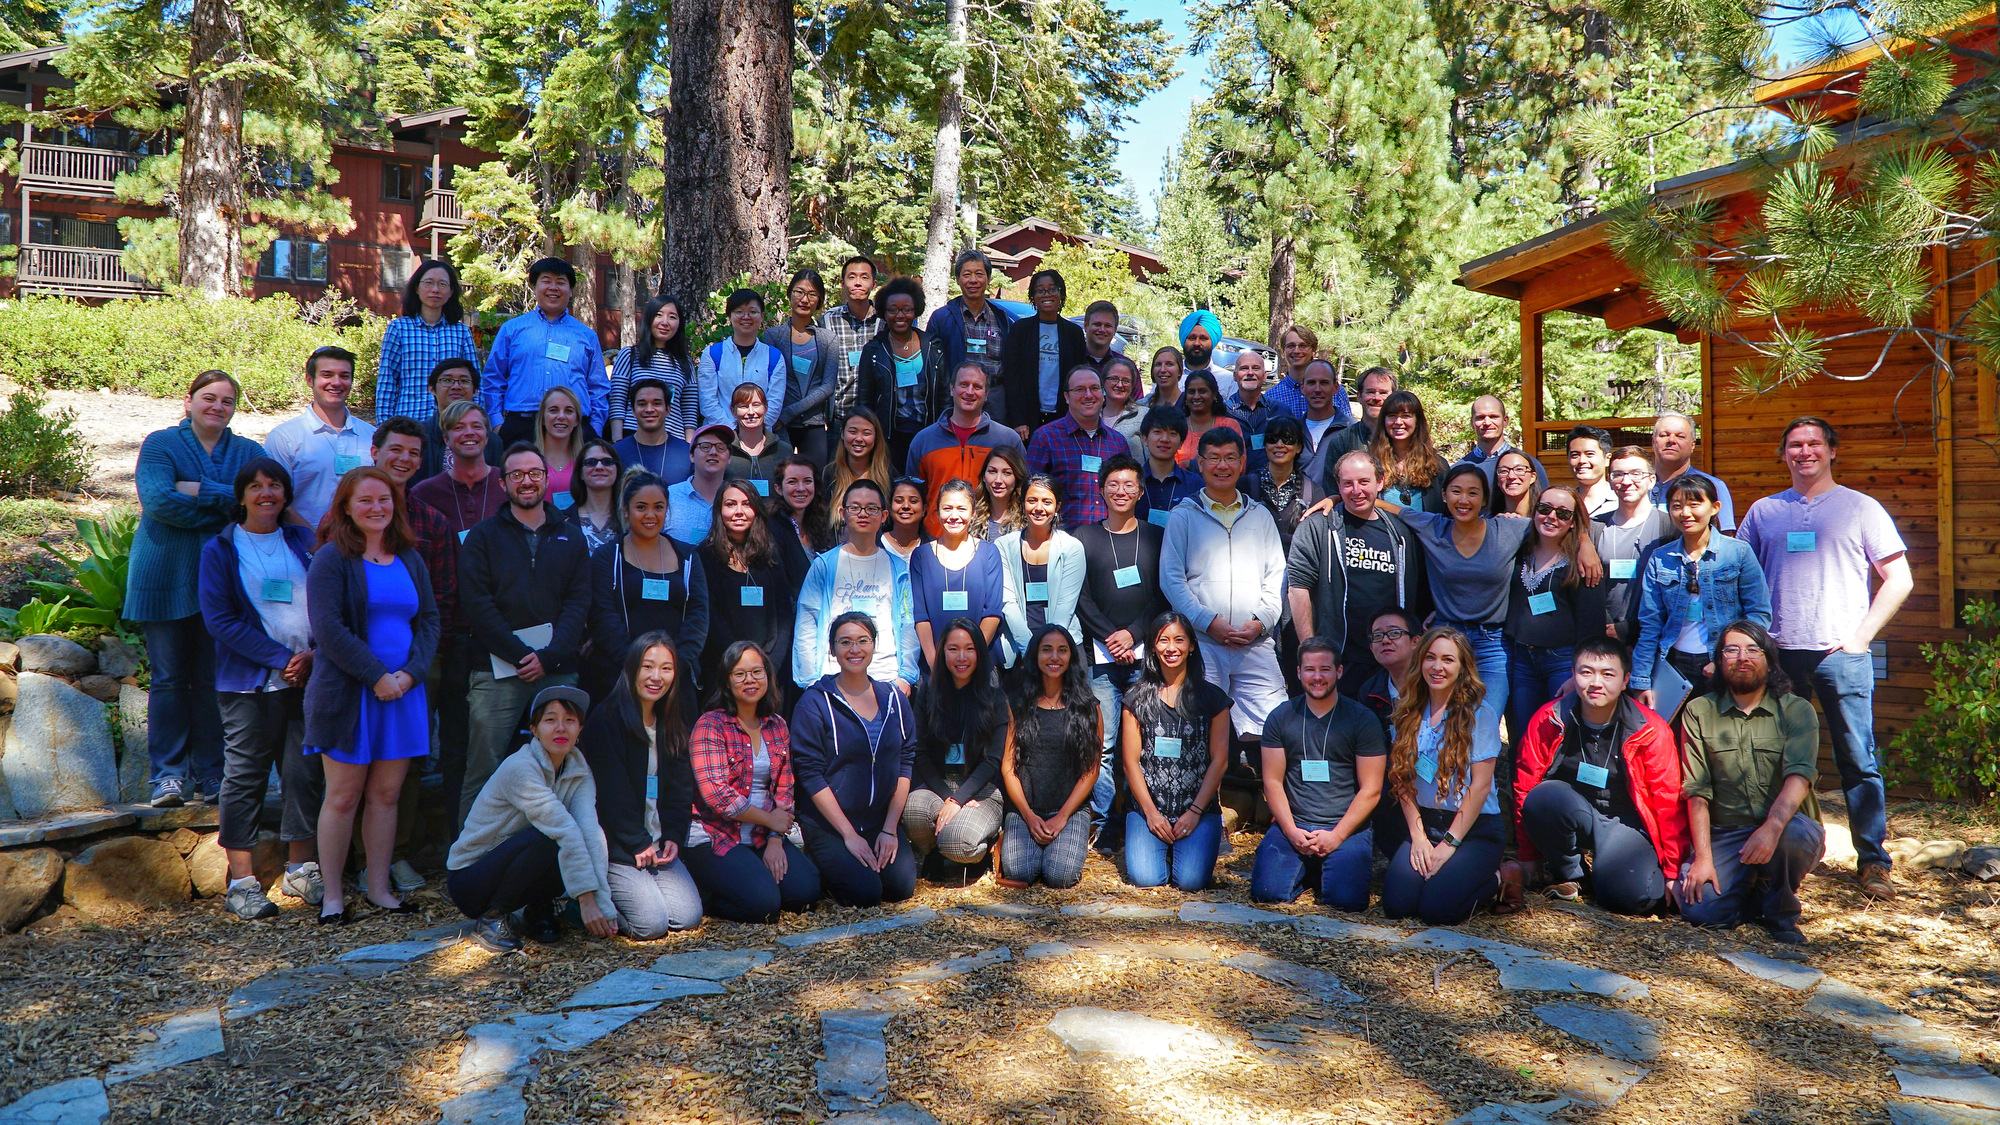 CBP Retreat Group Photo